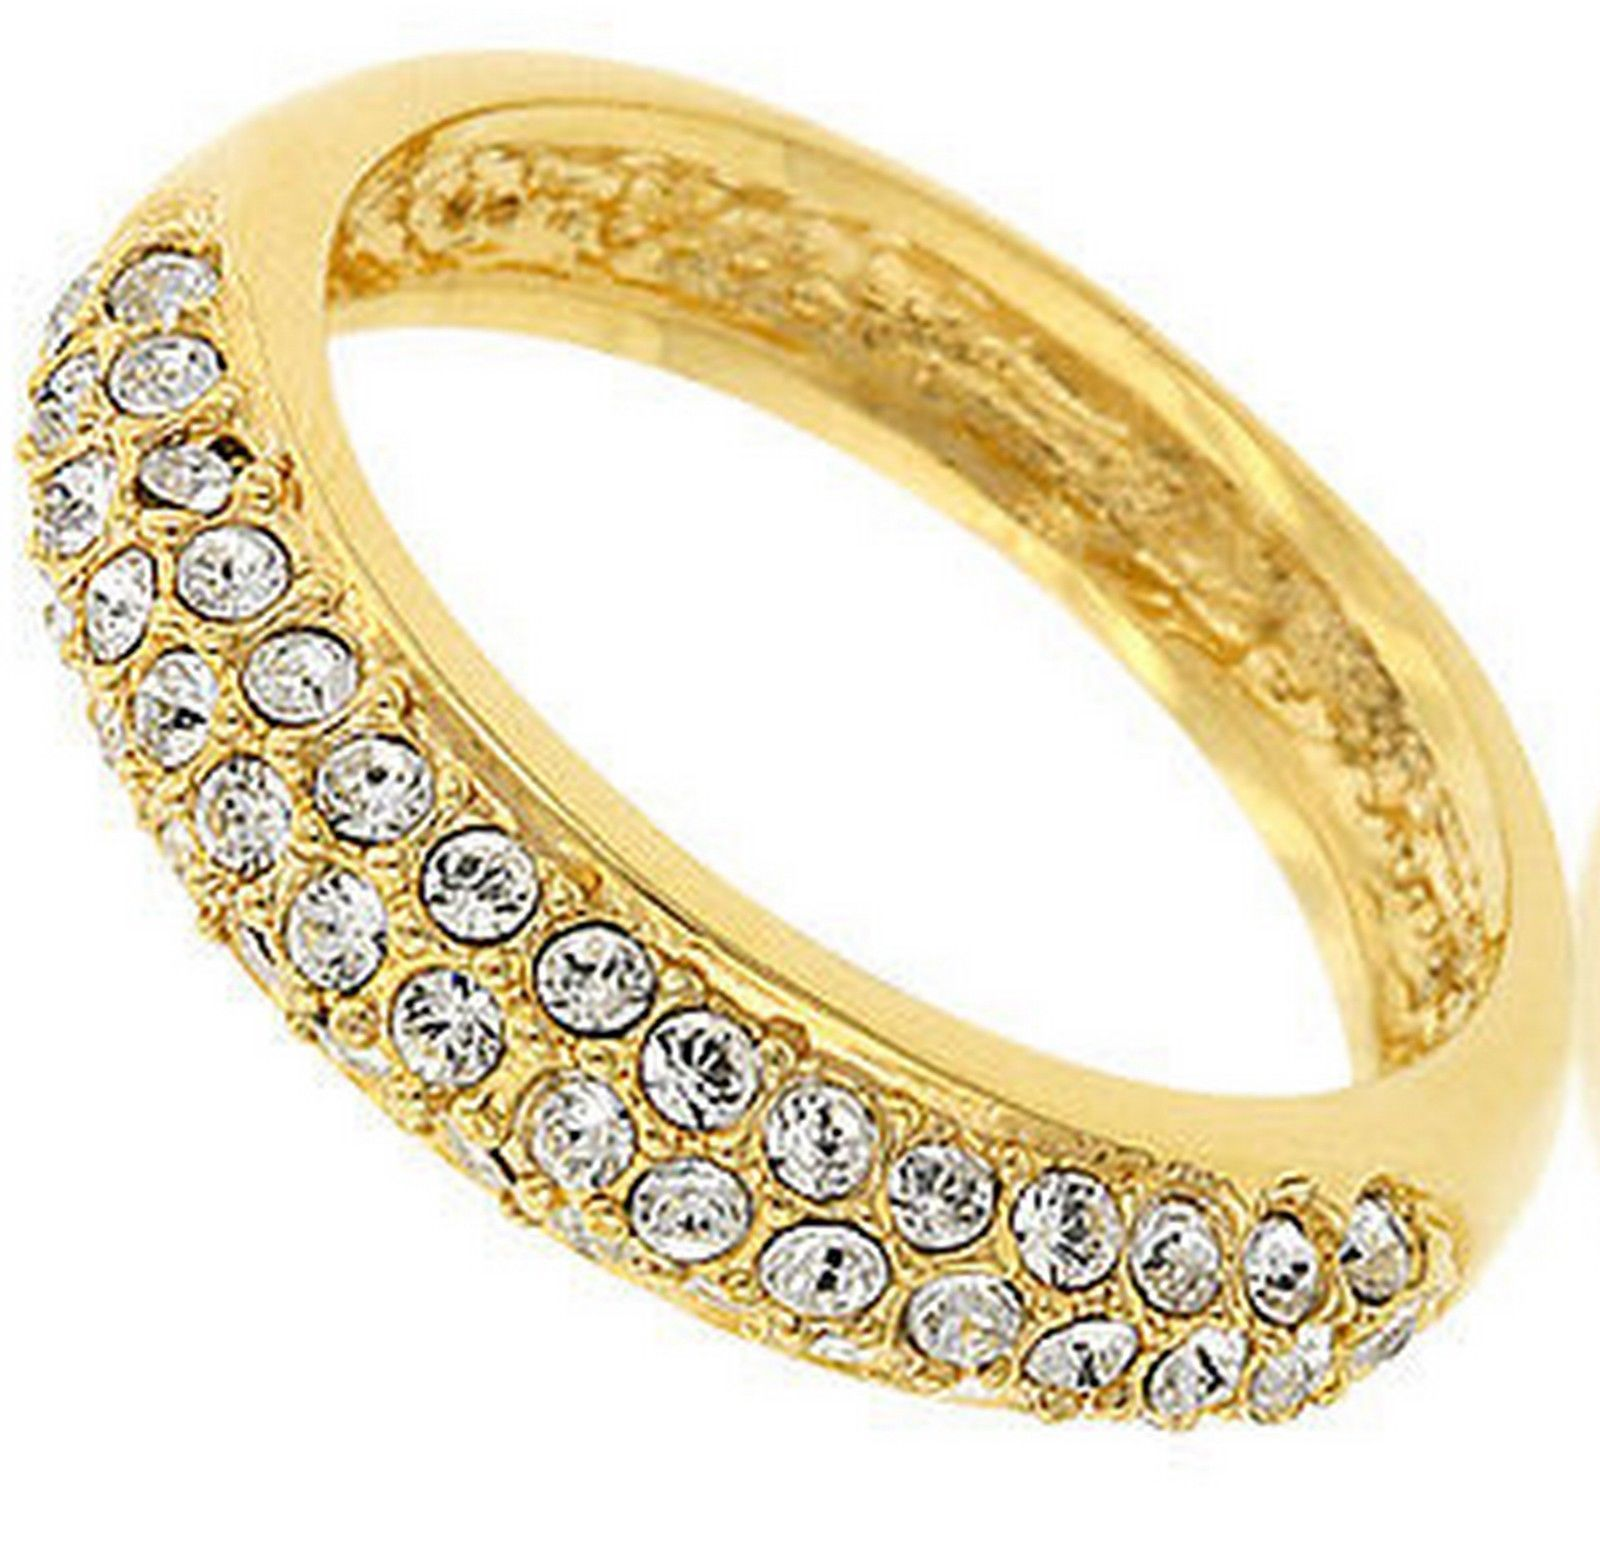 Primary image for Womens Ladies Classic Prom Blitz Gold Plated Band Glam Clear CZ Ring Size 7